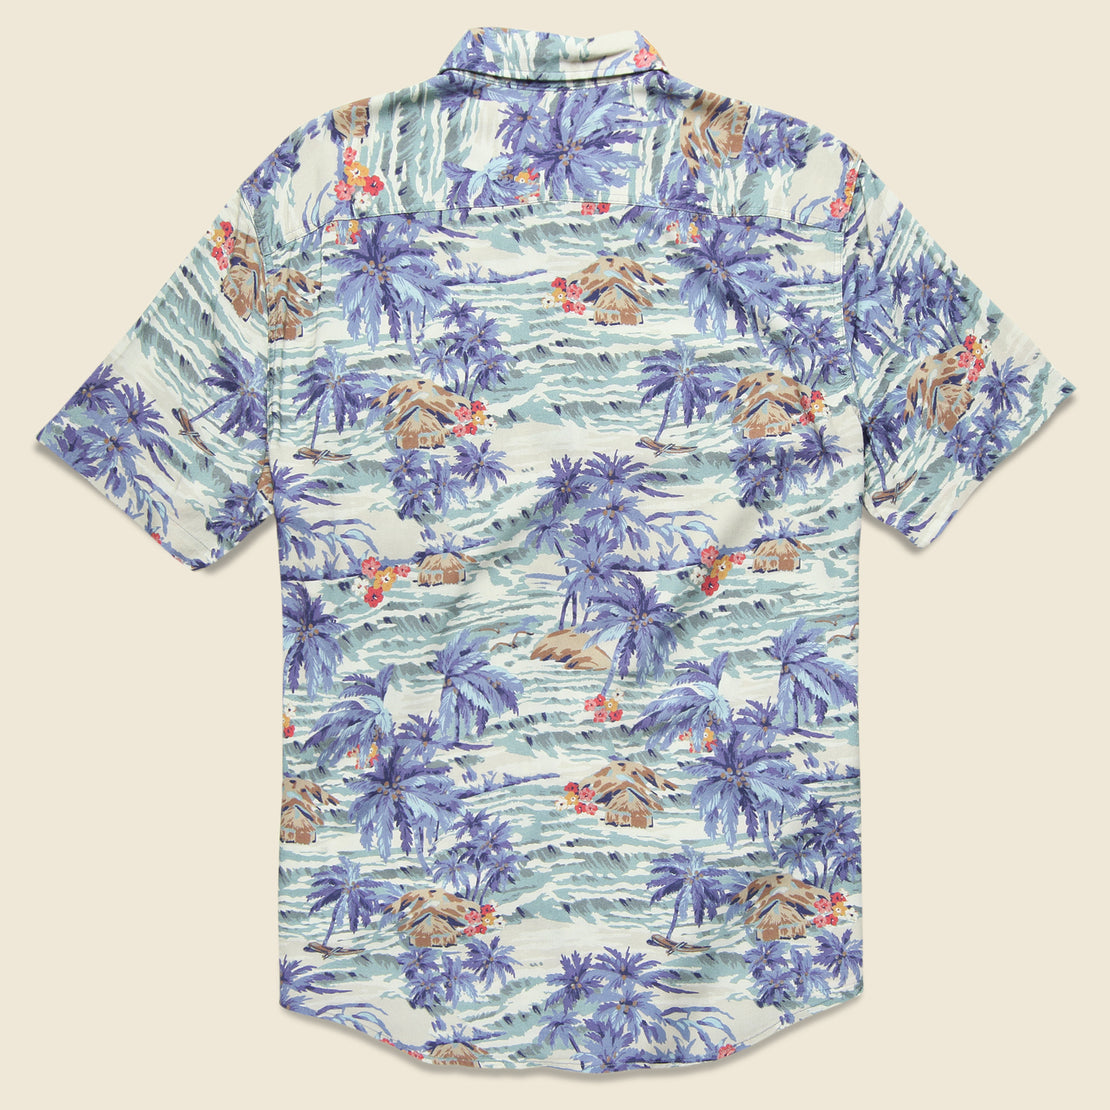 Tahitian Dreams Hawaiian Shirt - Multi